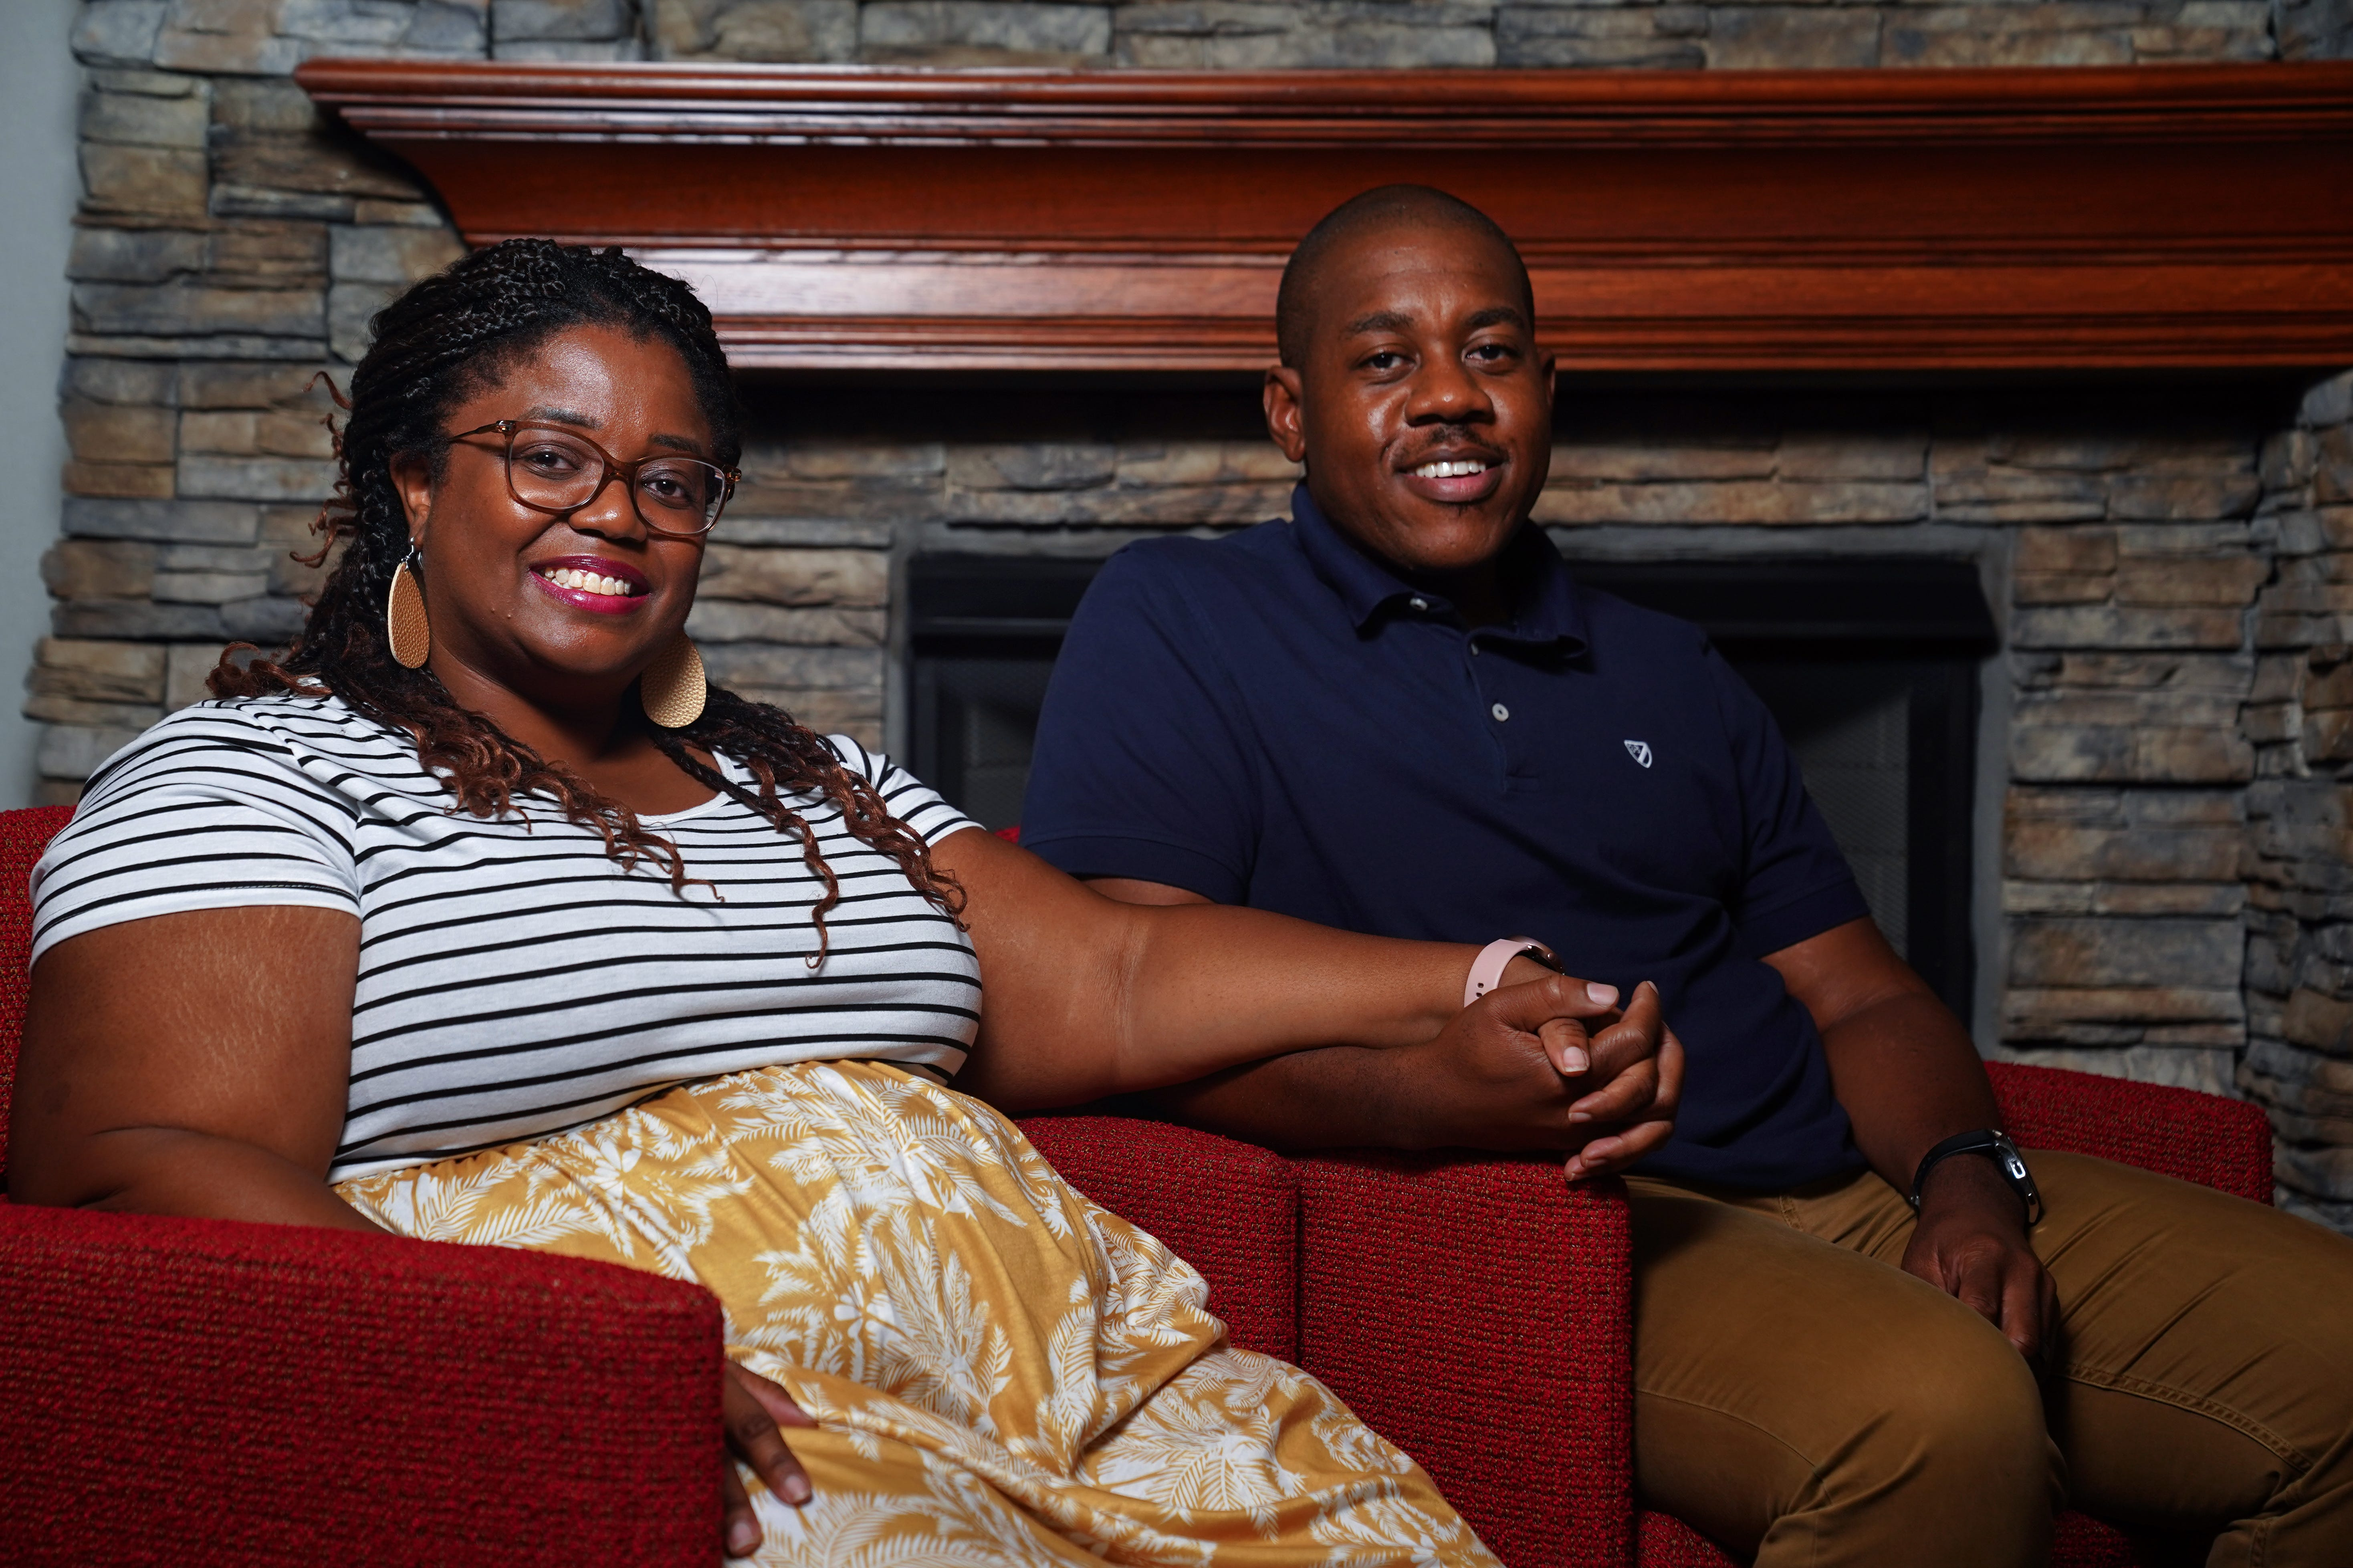 Black Family in Ohio Sees Home Appraisal Increase by 0,000 After Hiding Their Race